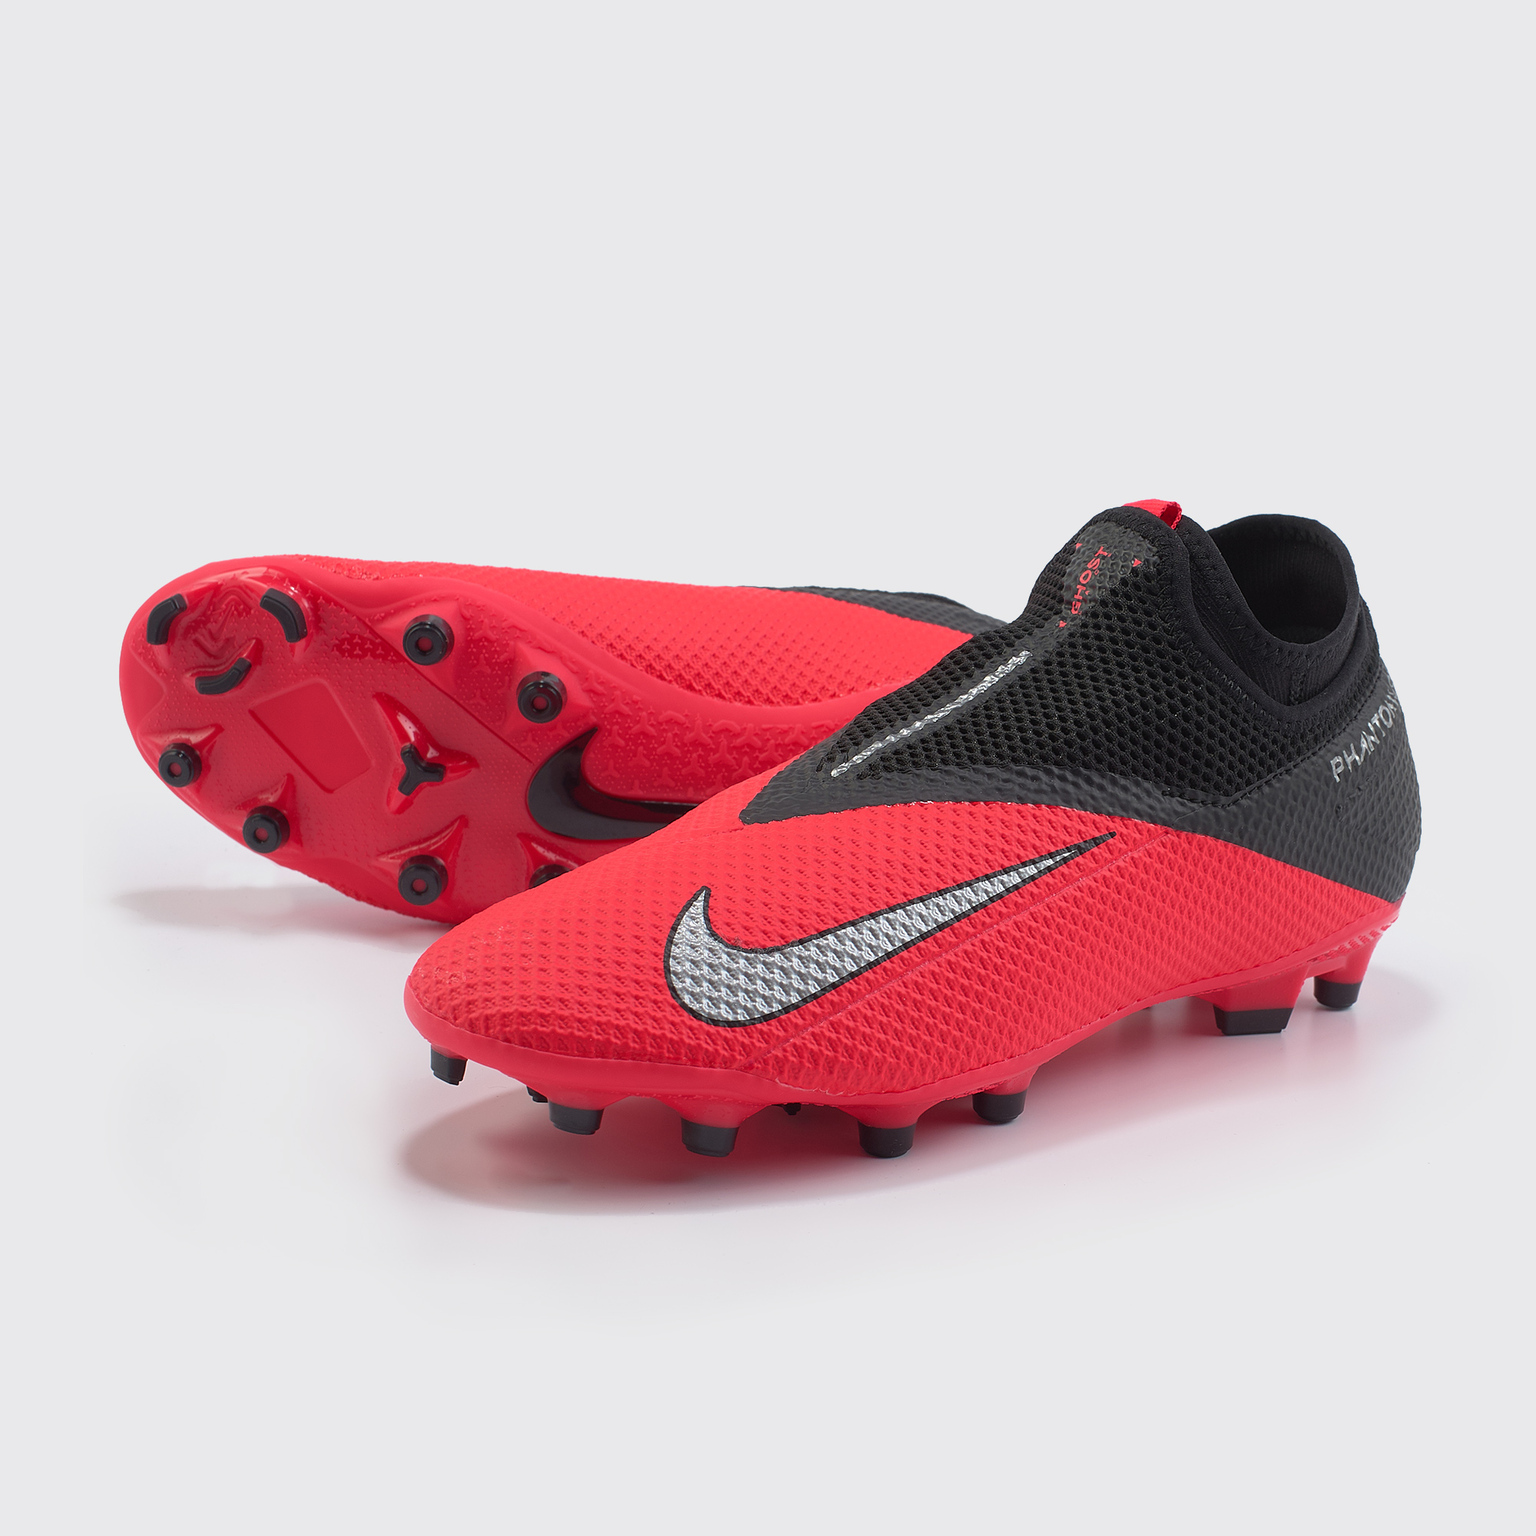 Бутсы Nike Phantom Vision 2 Academy DF FG/MG CD4156-606 бутсы nike phantom vision 2 pro df fg cd4162 606